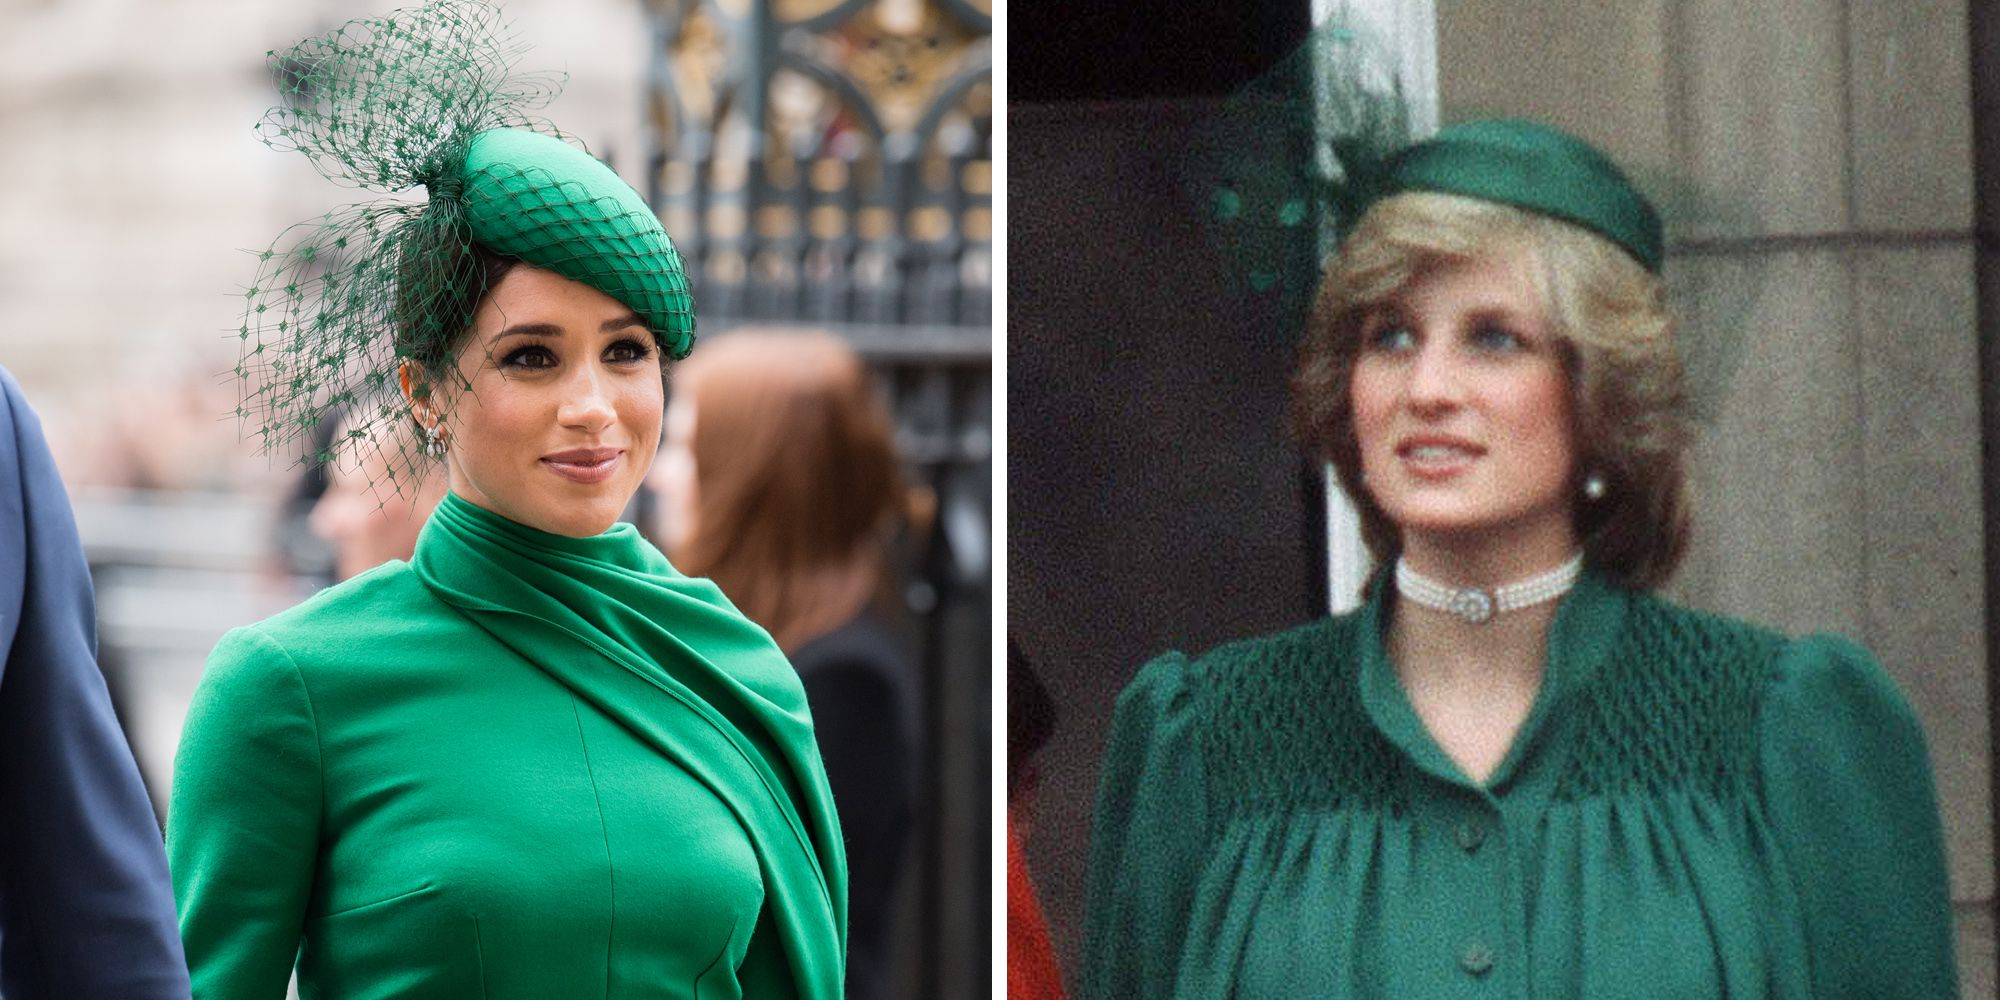 meghan markle s commonwealth day look nods to princess diana meghan markle s commonwealth day look